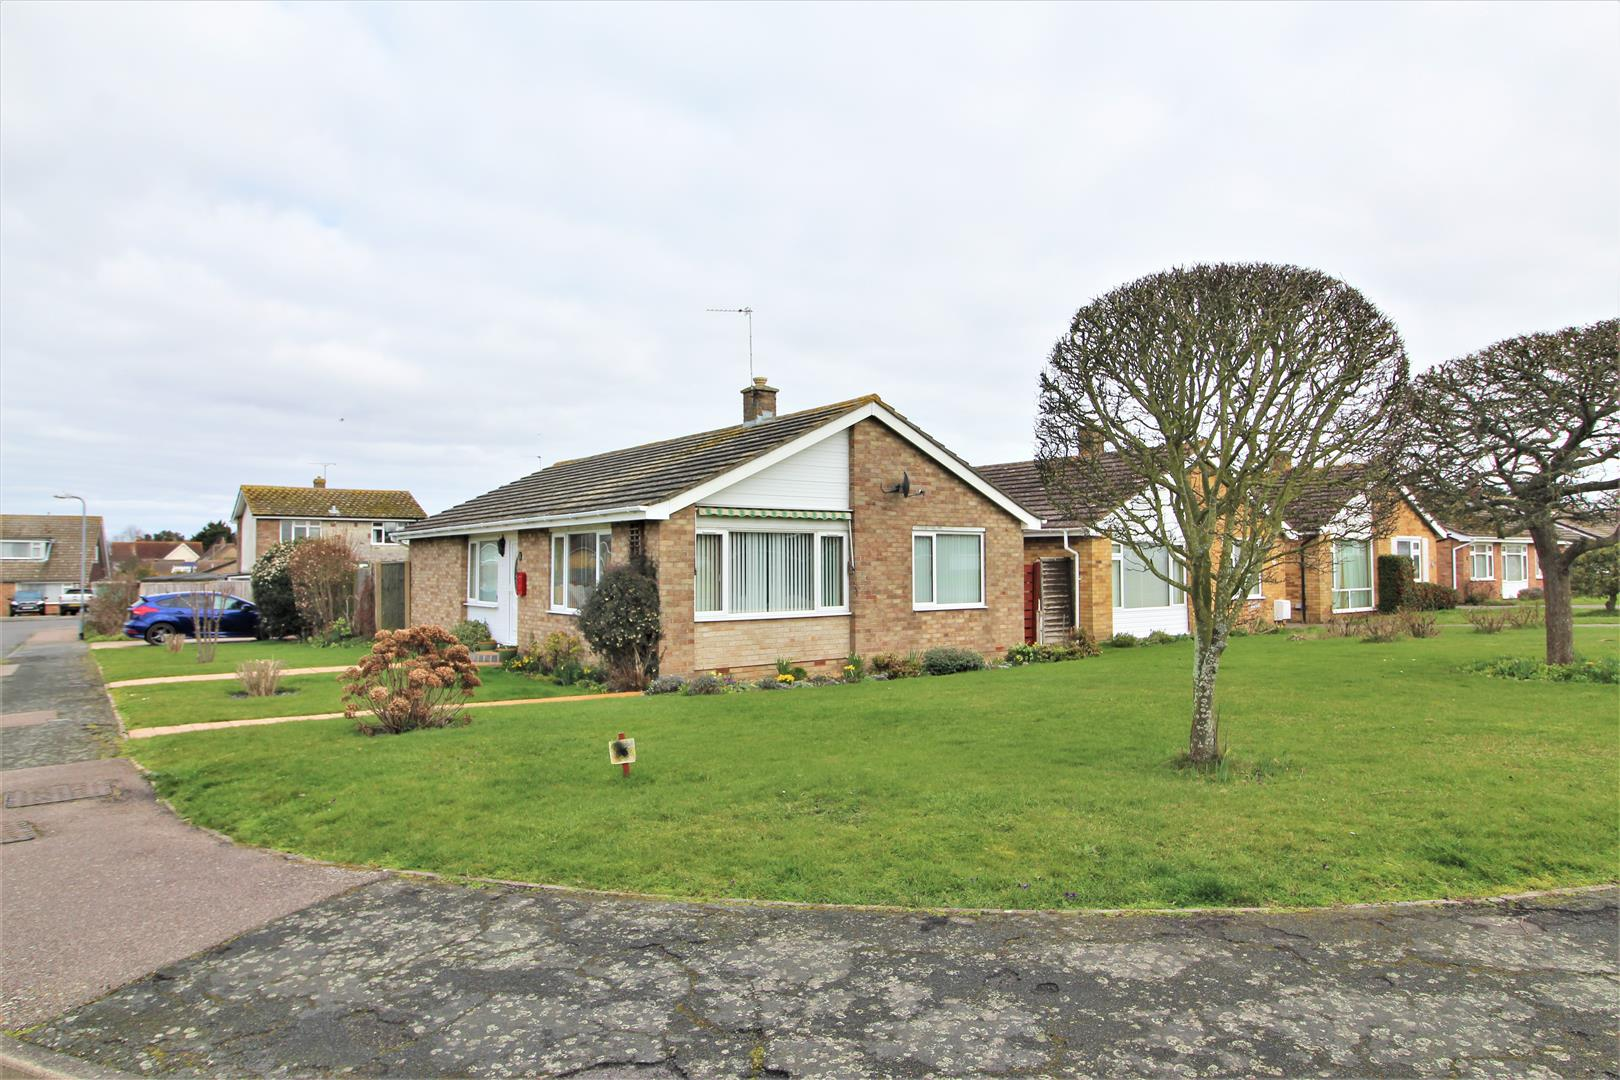 Dugmore Avenue, Kirby-Le-Soken, Essex, CO13 0ED